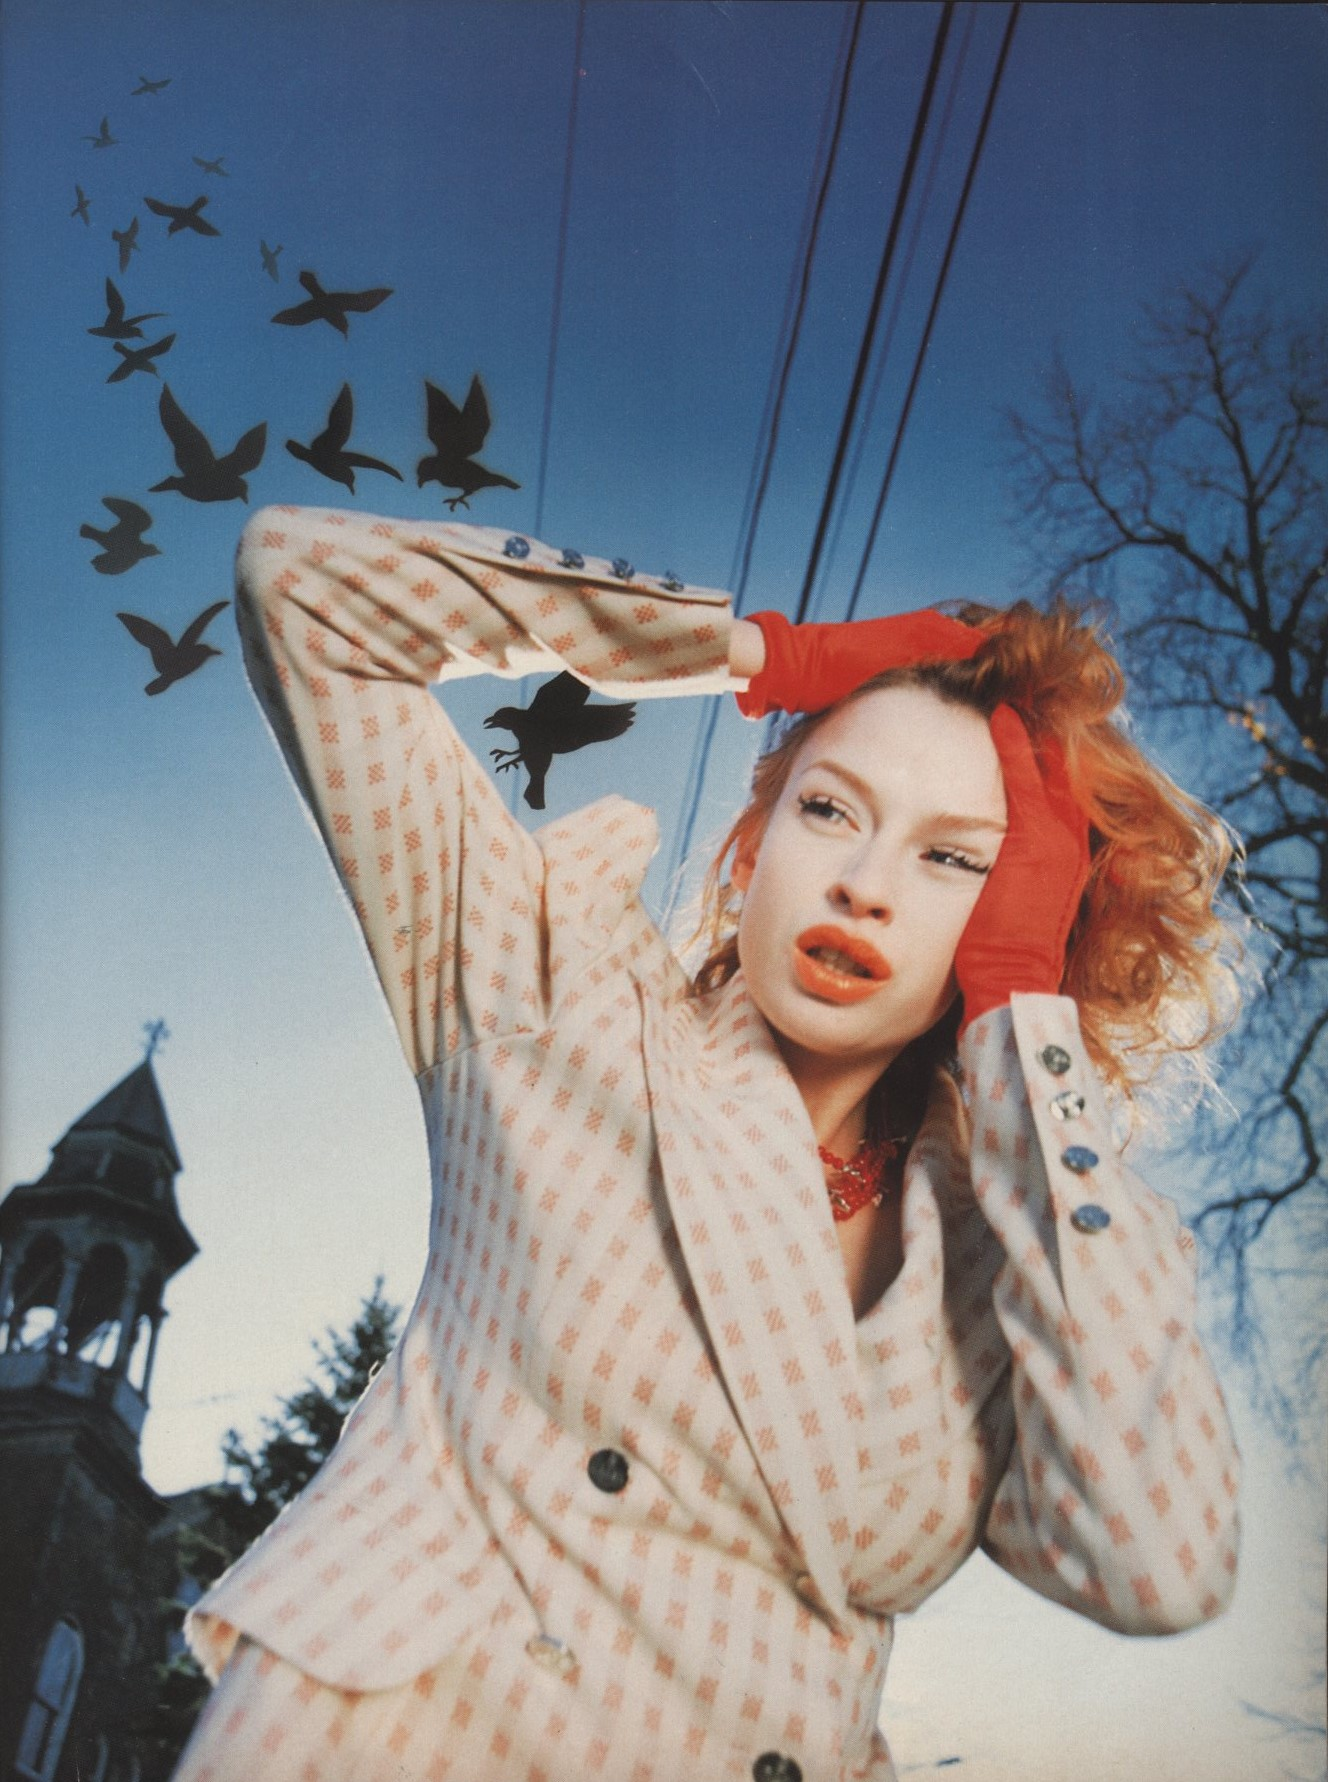 CLARE MULHOLLAND JACKET VIVIENNE WESTWOOD THE BIRDS PHOTOGRAPHY NINA SCHULTZ STYLING SETA NILAND THE FACE NO 77 FEBRUARY 1995